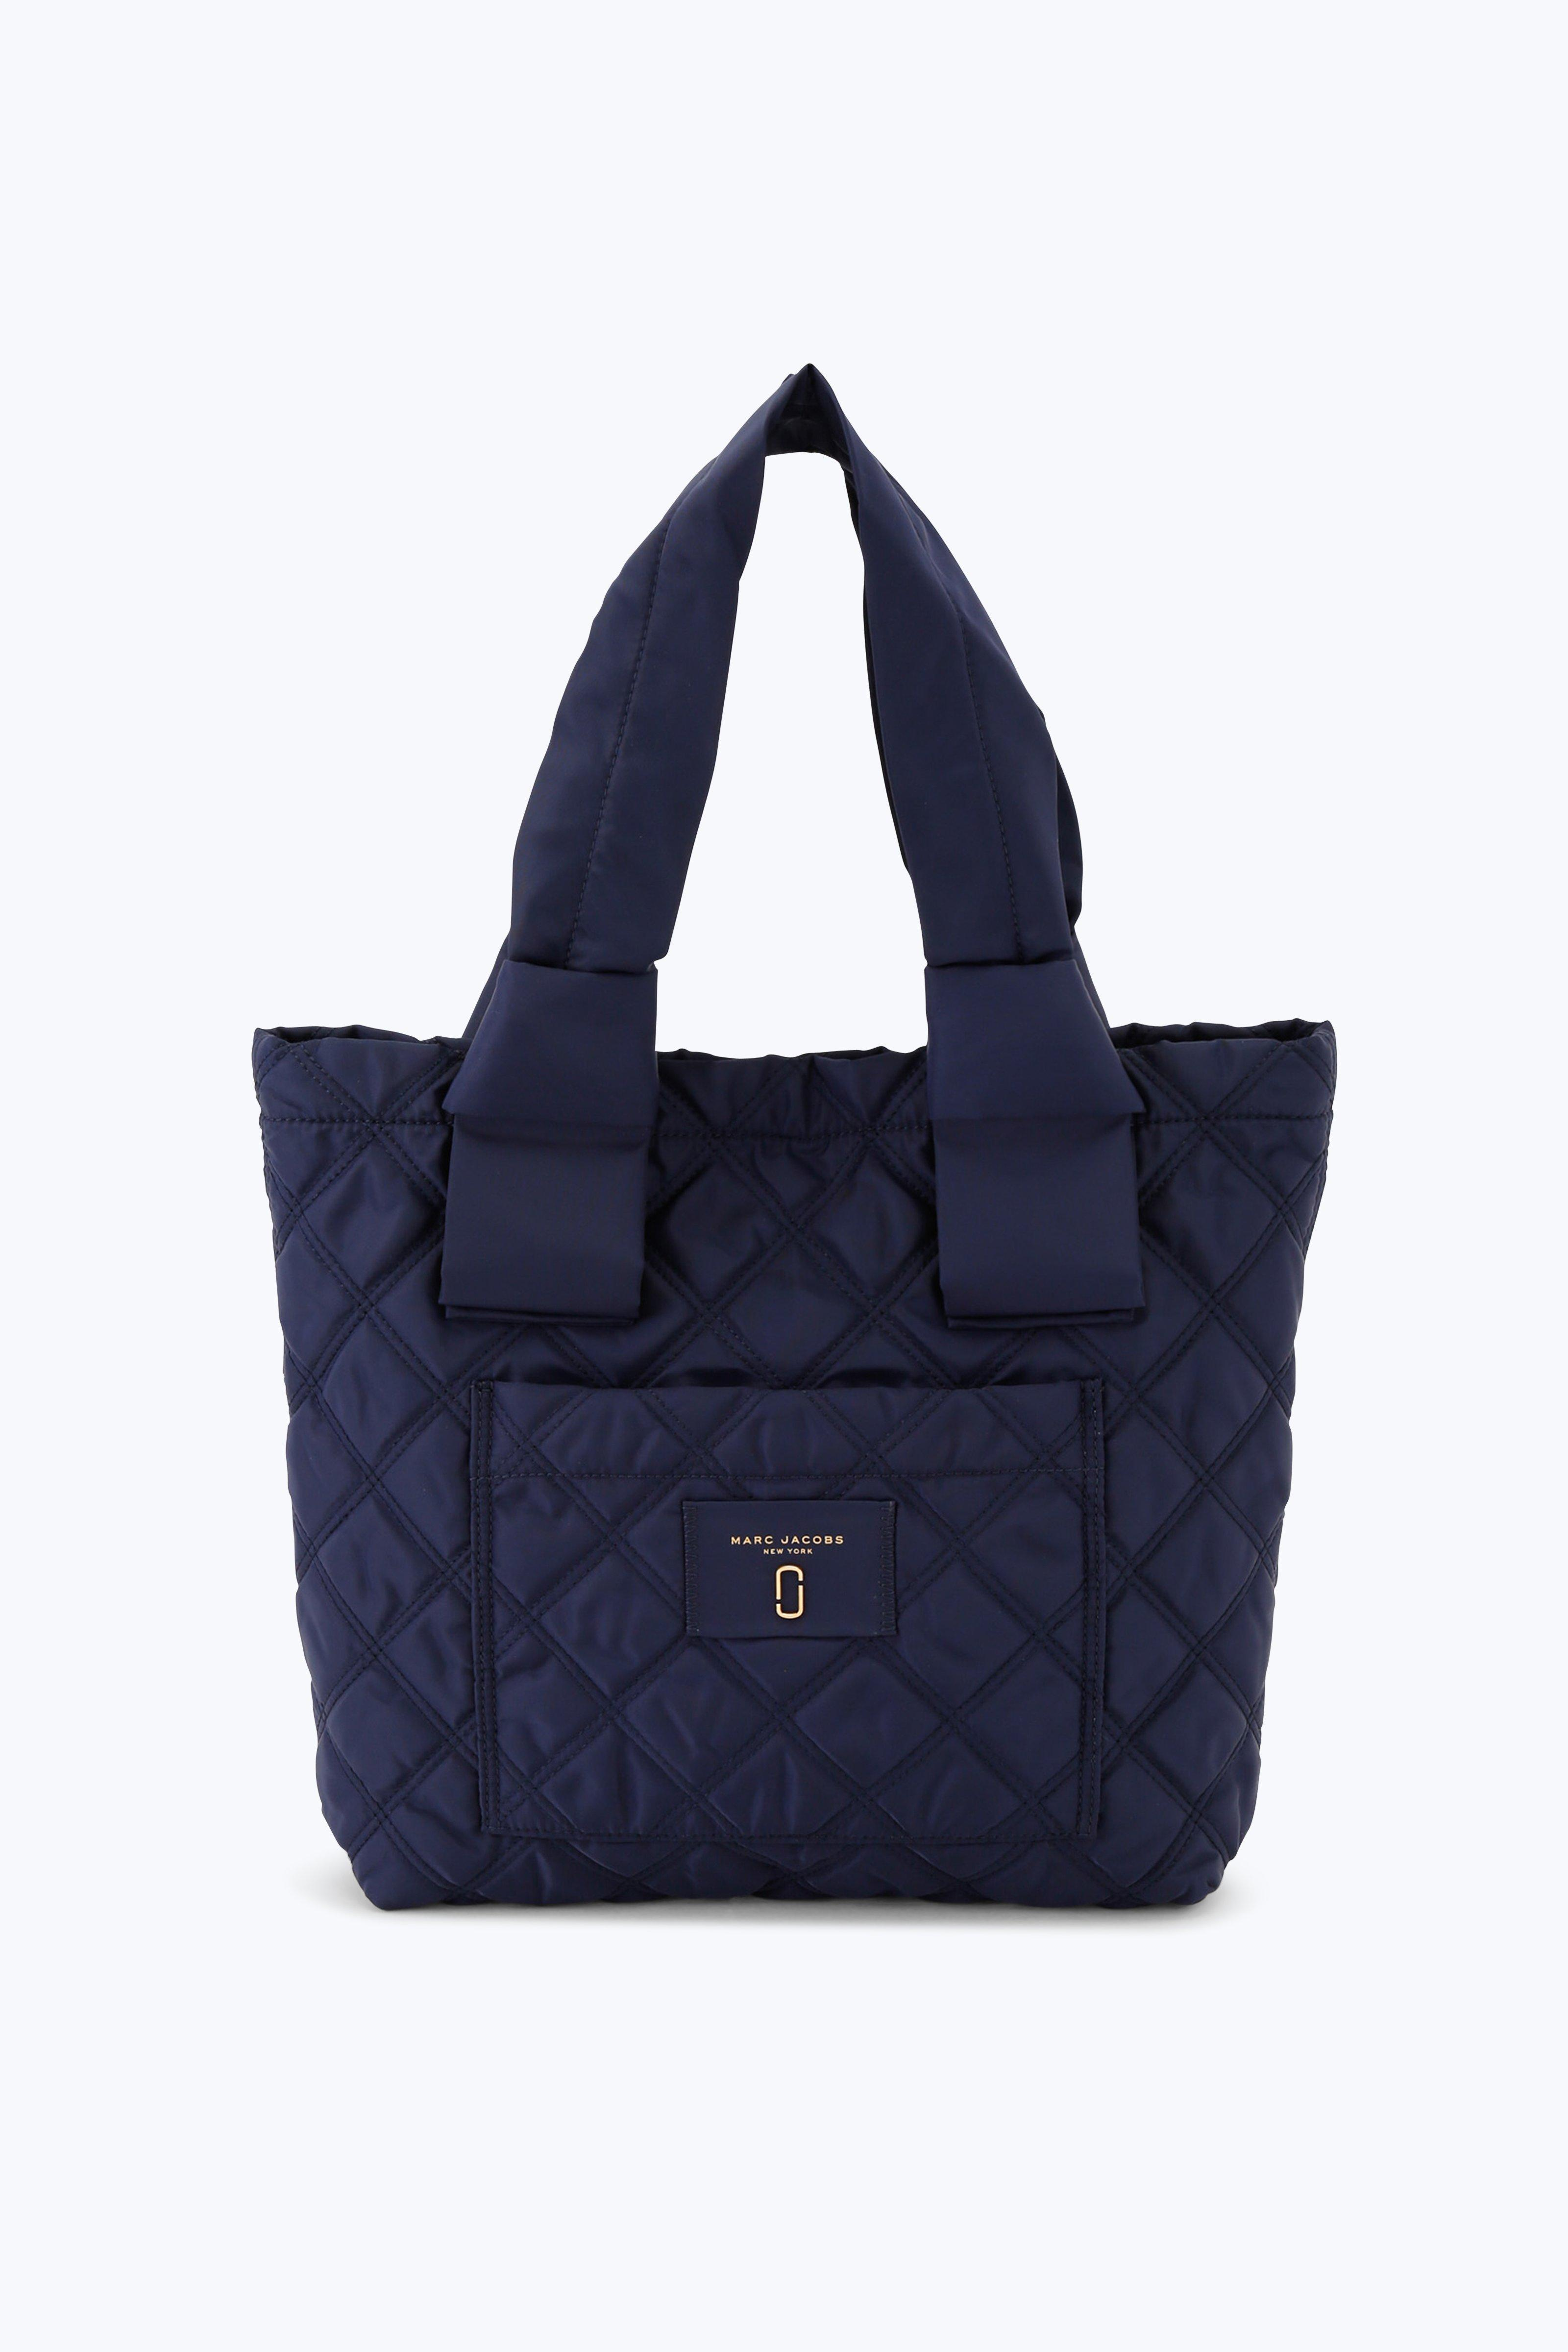 Marc Jacobs Nylon Knot Small Tote Bag In Midnight Blue